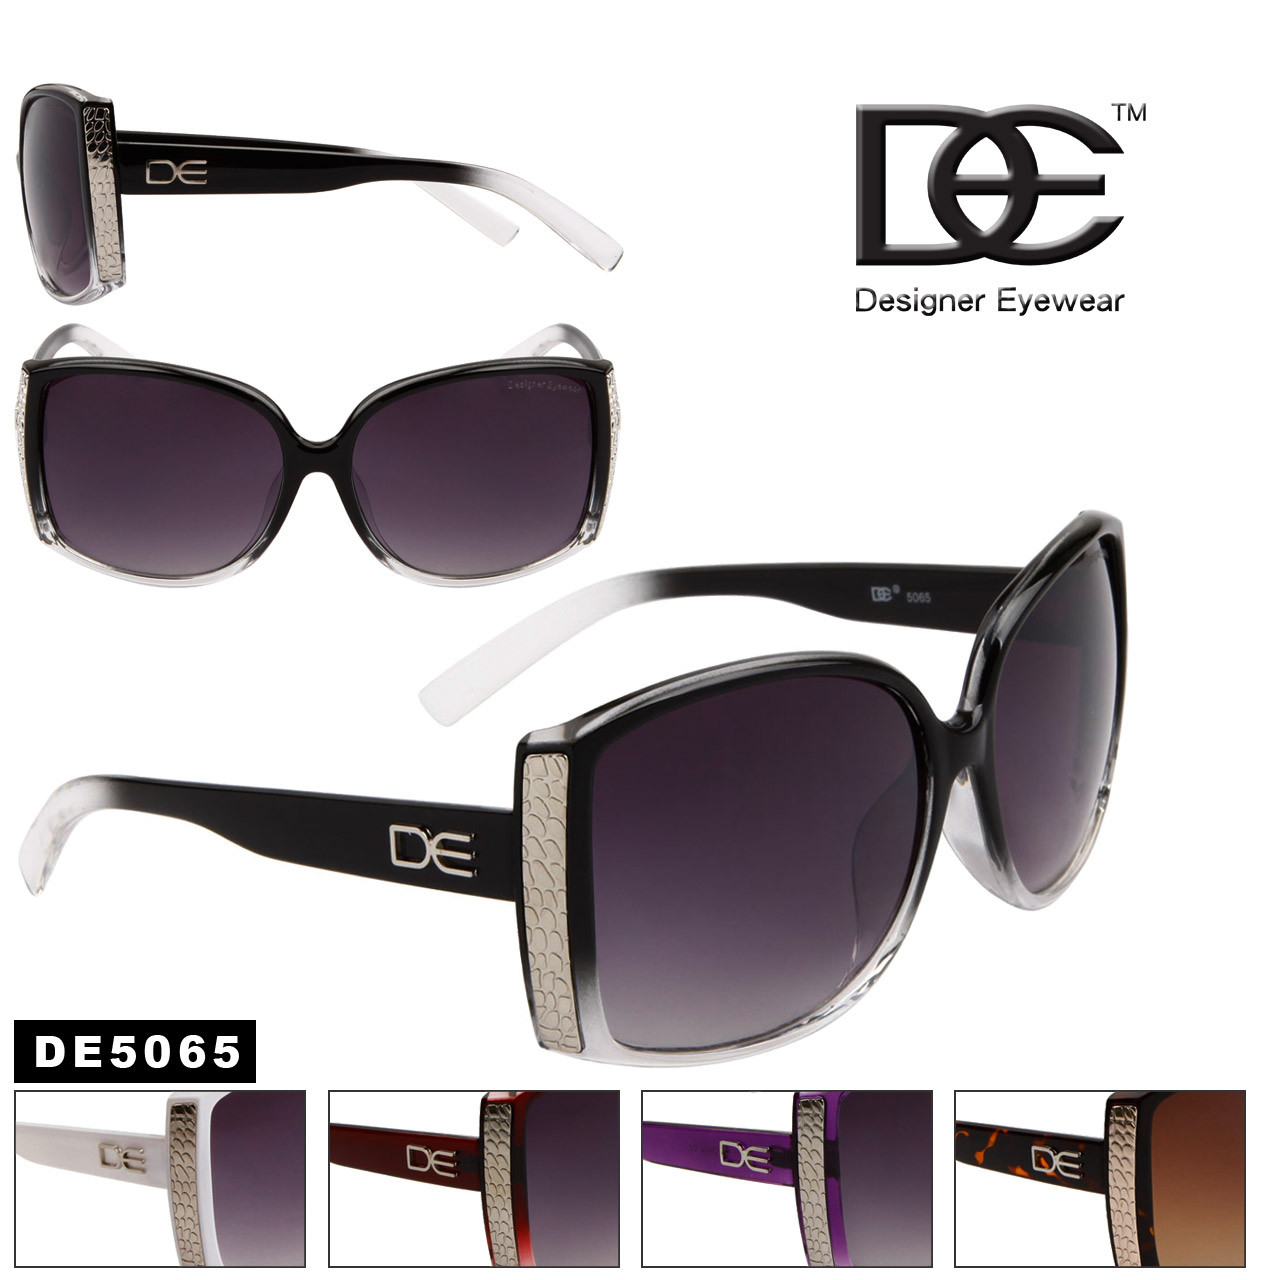 DE™ Sunglasses Wholesale by the Dozen - Style # DE5065